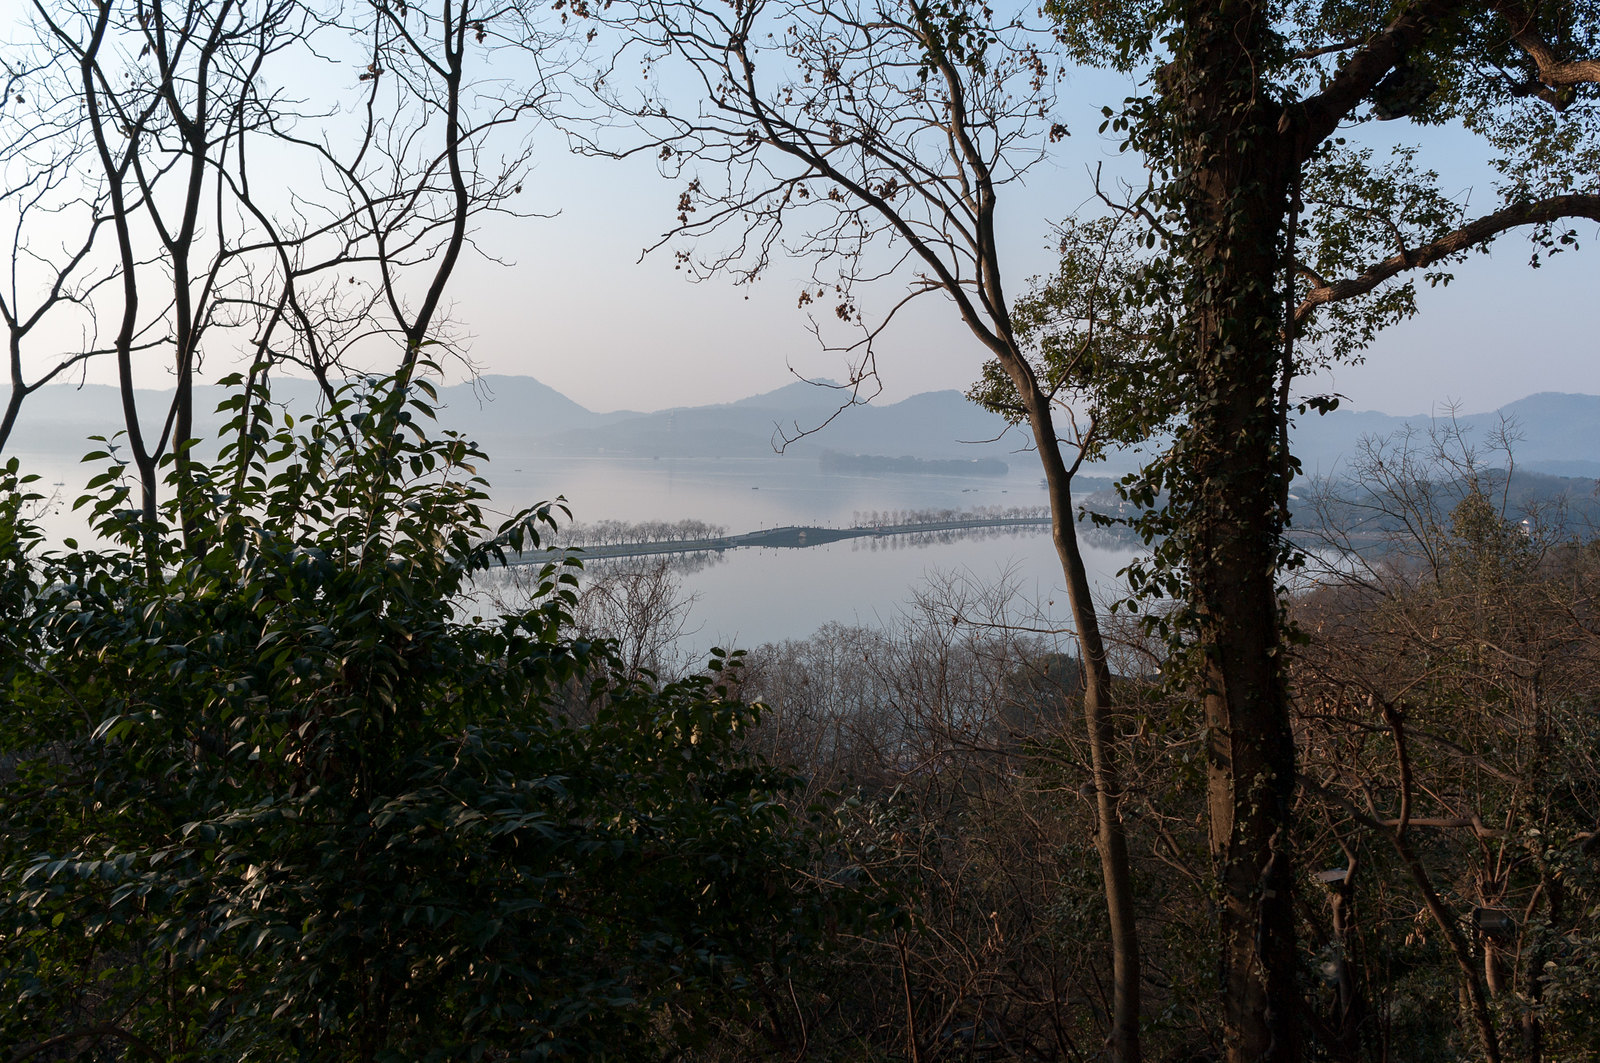 West Lake view from Baoshi mountain (宝石山)